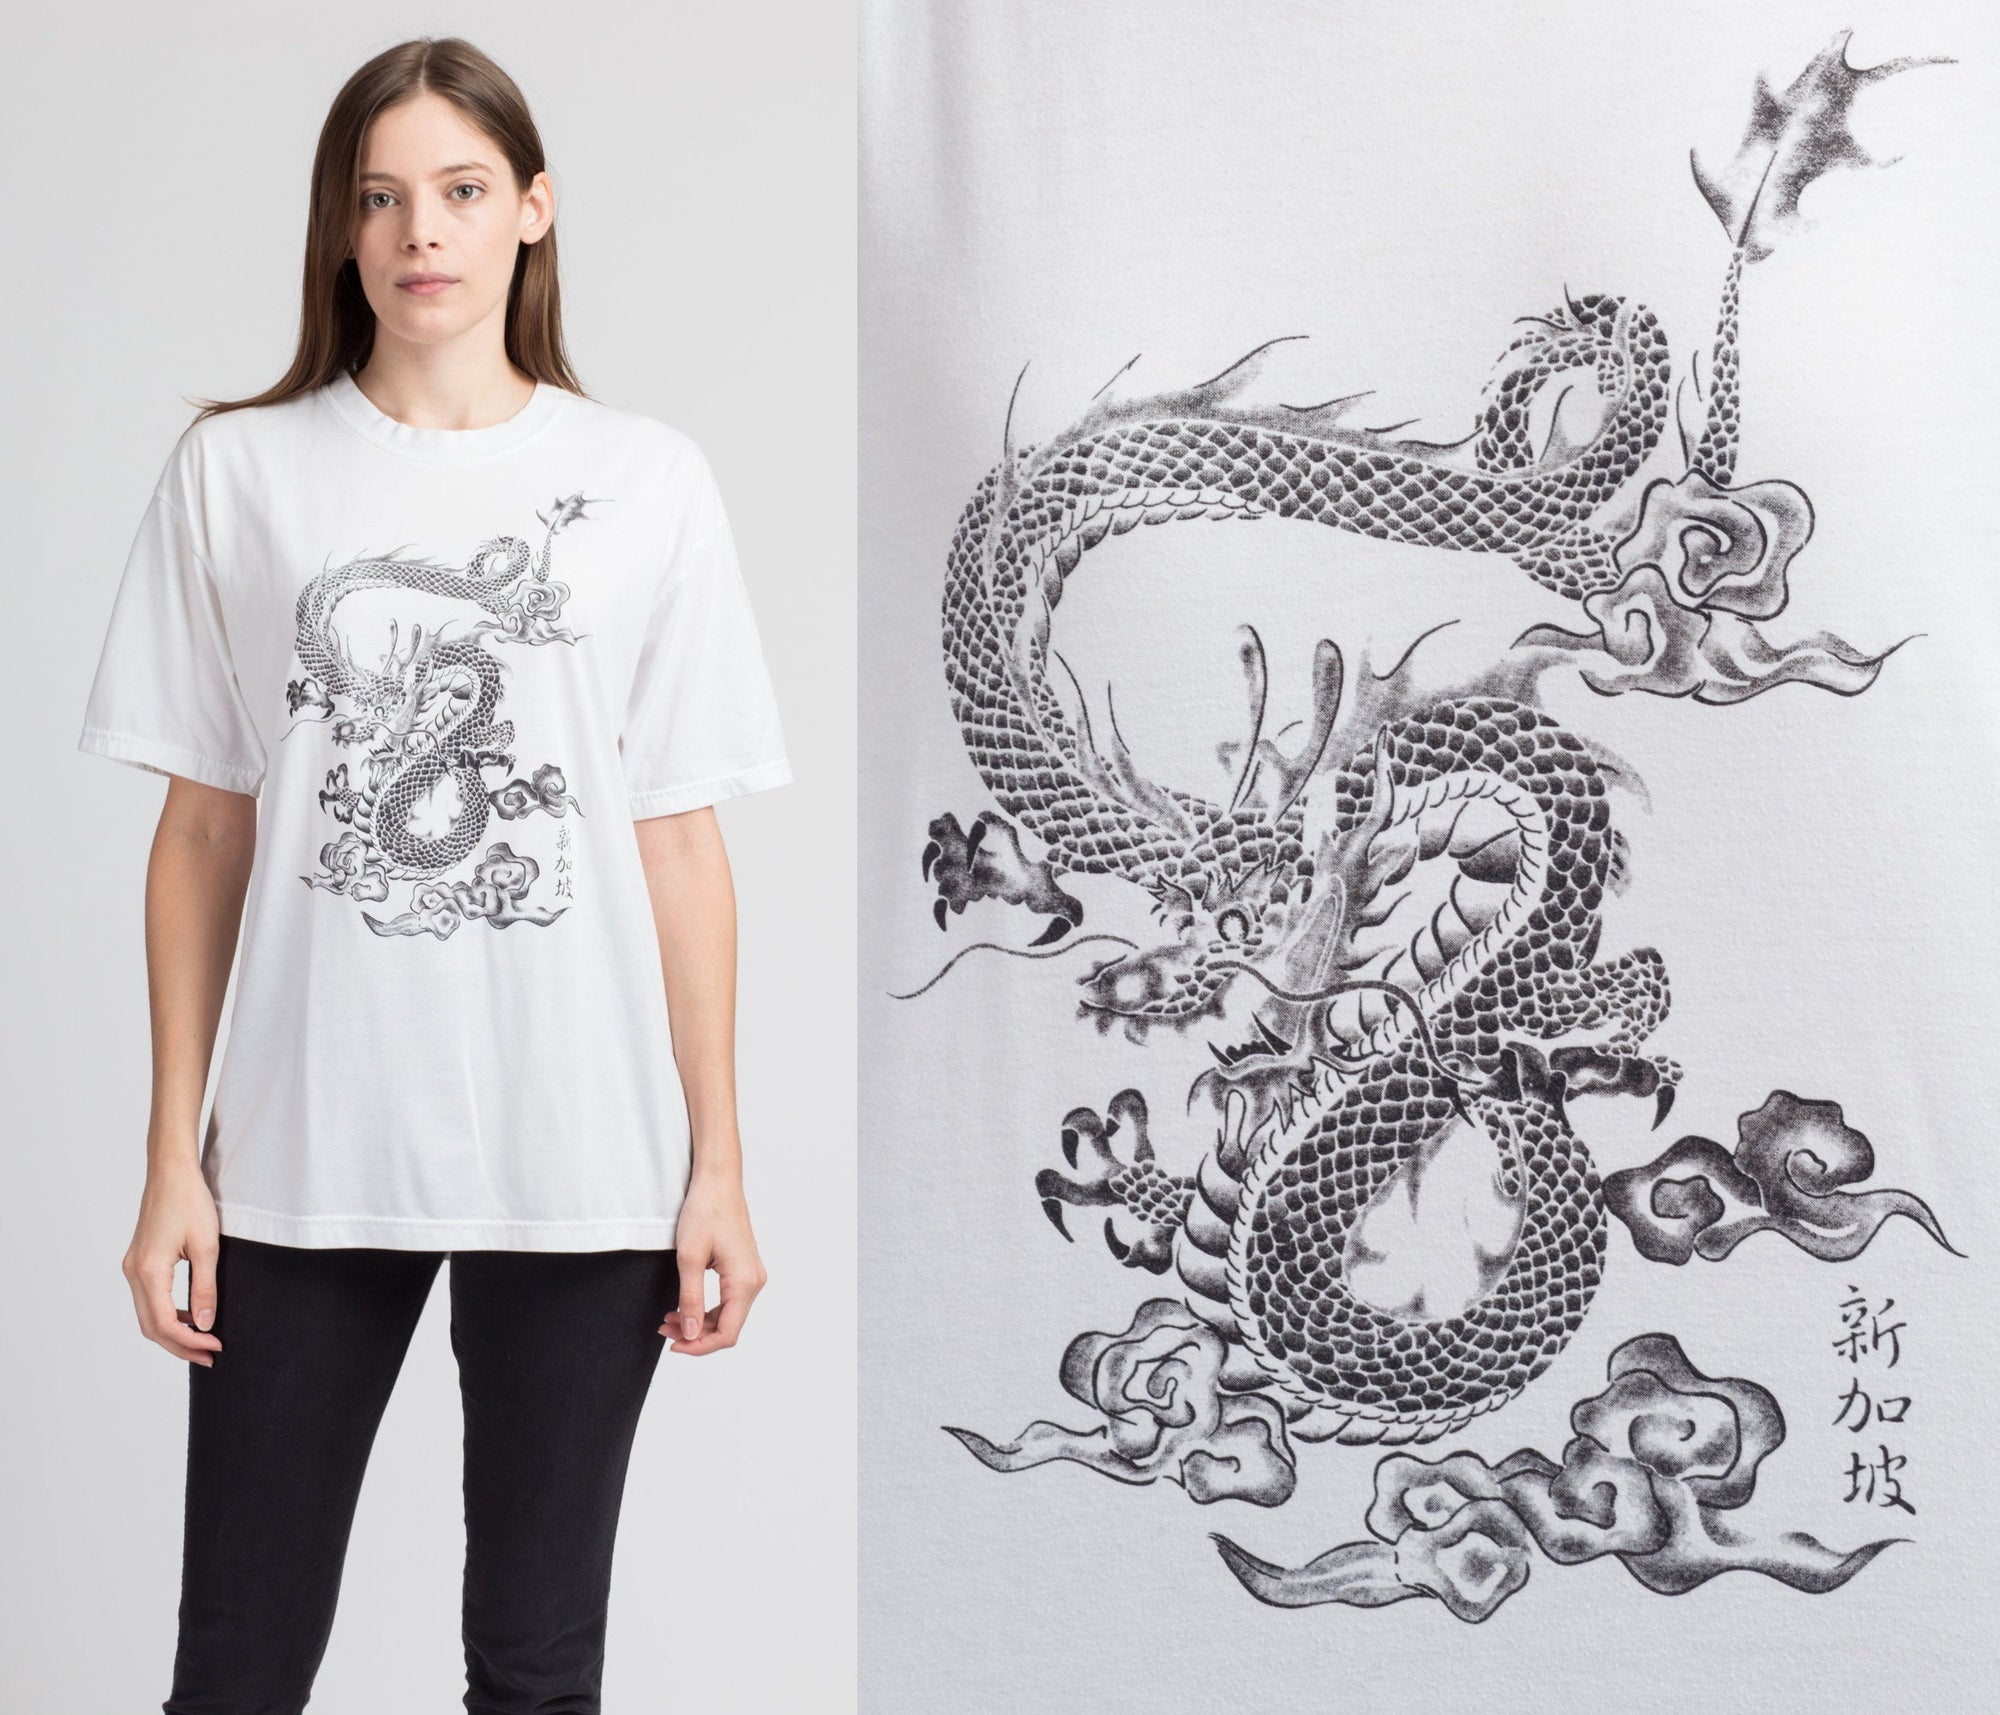 90s Singapore Dragon T Shirt - One Size